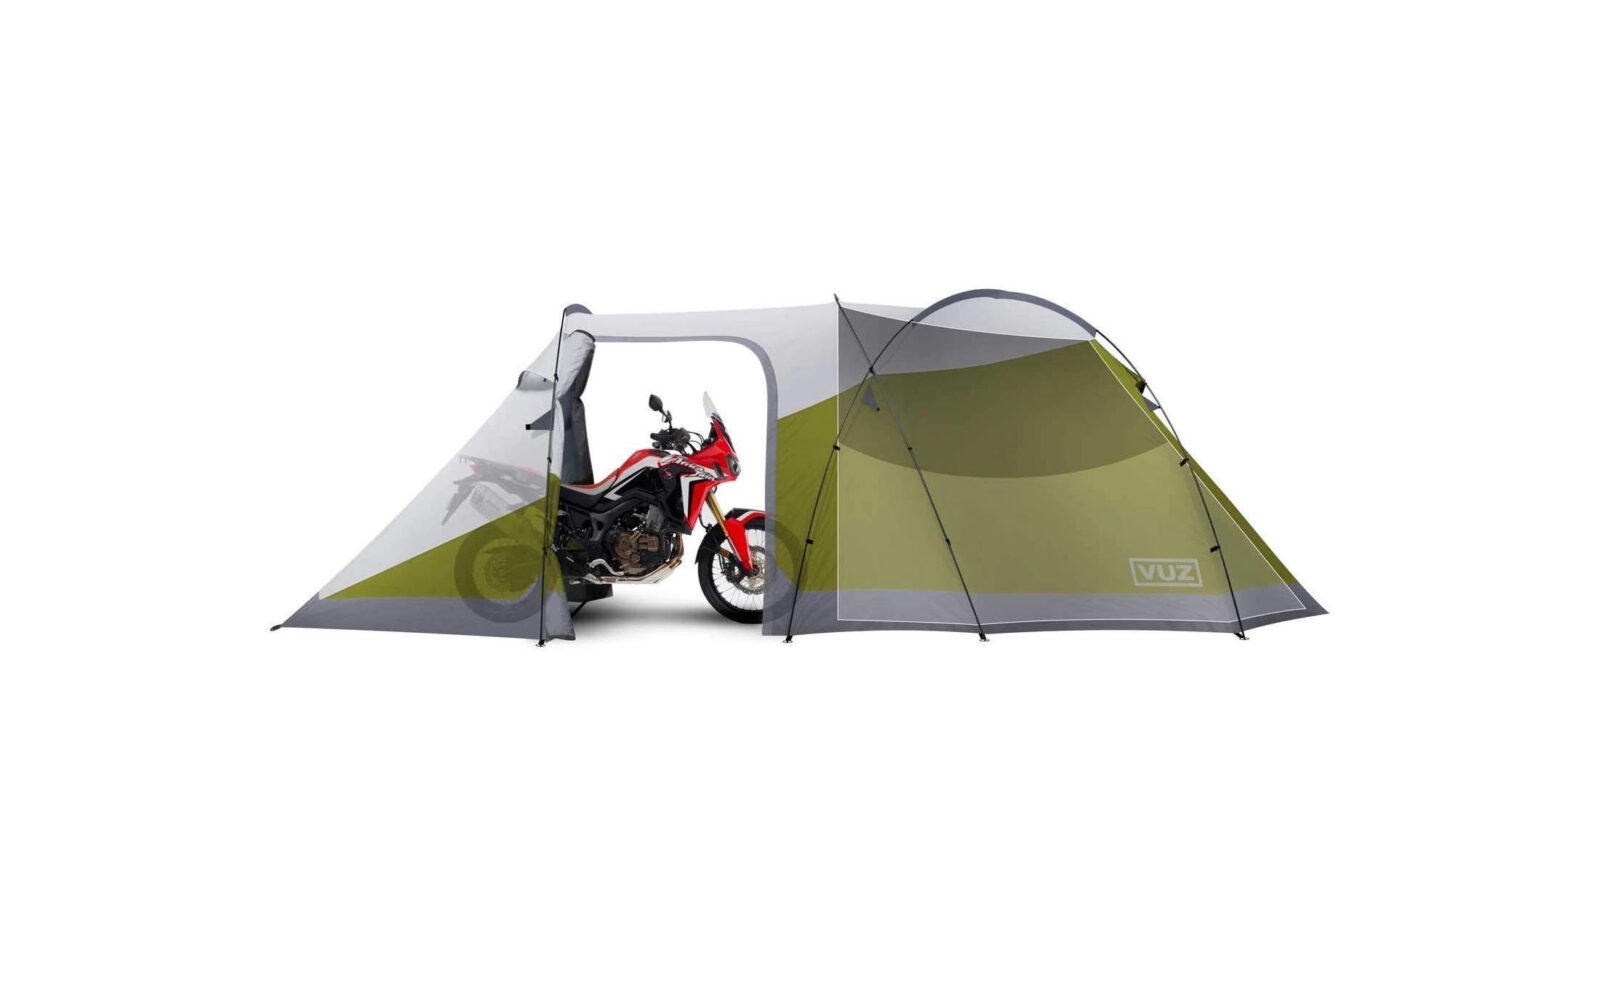 Vuz Motorcycle 3 Person Tent 1600x983 - The Vuz Motorcycle Tent - A Tent With A Garage And Space For 3 People